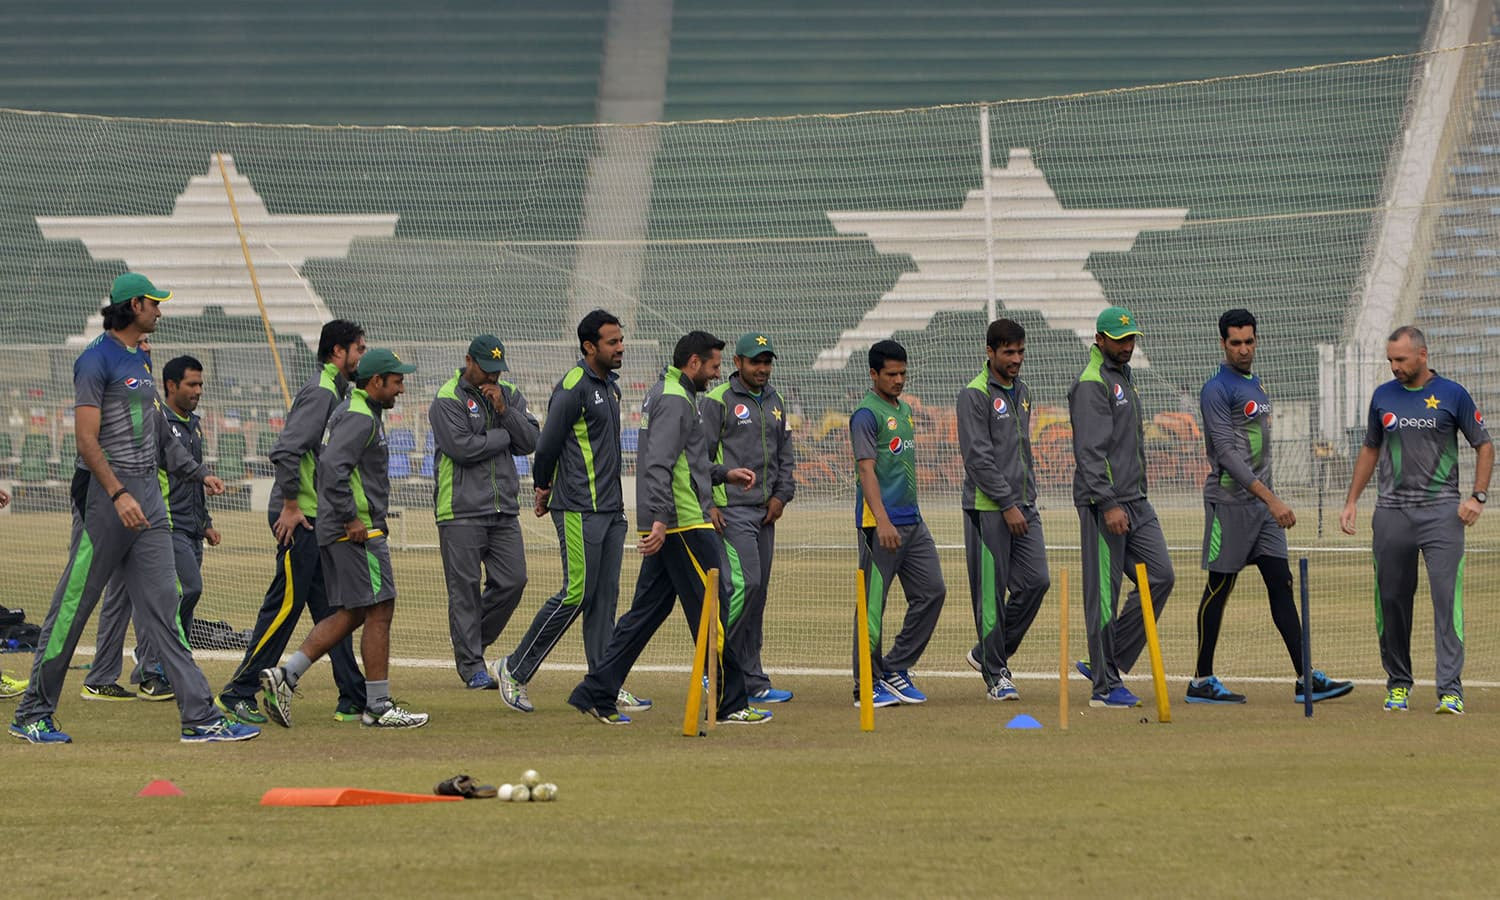 Pakistani cricketers practice during a camp for the Pakistan Super League (PSL) in Lahore on December 22, 2015. The first edition of the PSL Twenty20 league will be held in Dubai and Sharjah from February 4. Five teams from Karachi, Islamabad, Quetta, Lahore and Peshawar will compete in the league, designed on the lines of the Indian Premier League and Australia's Big Bash. AFP PHOTO / Arif ALI